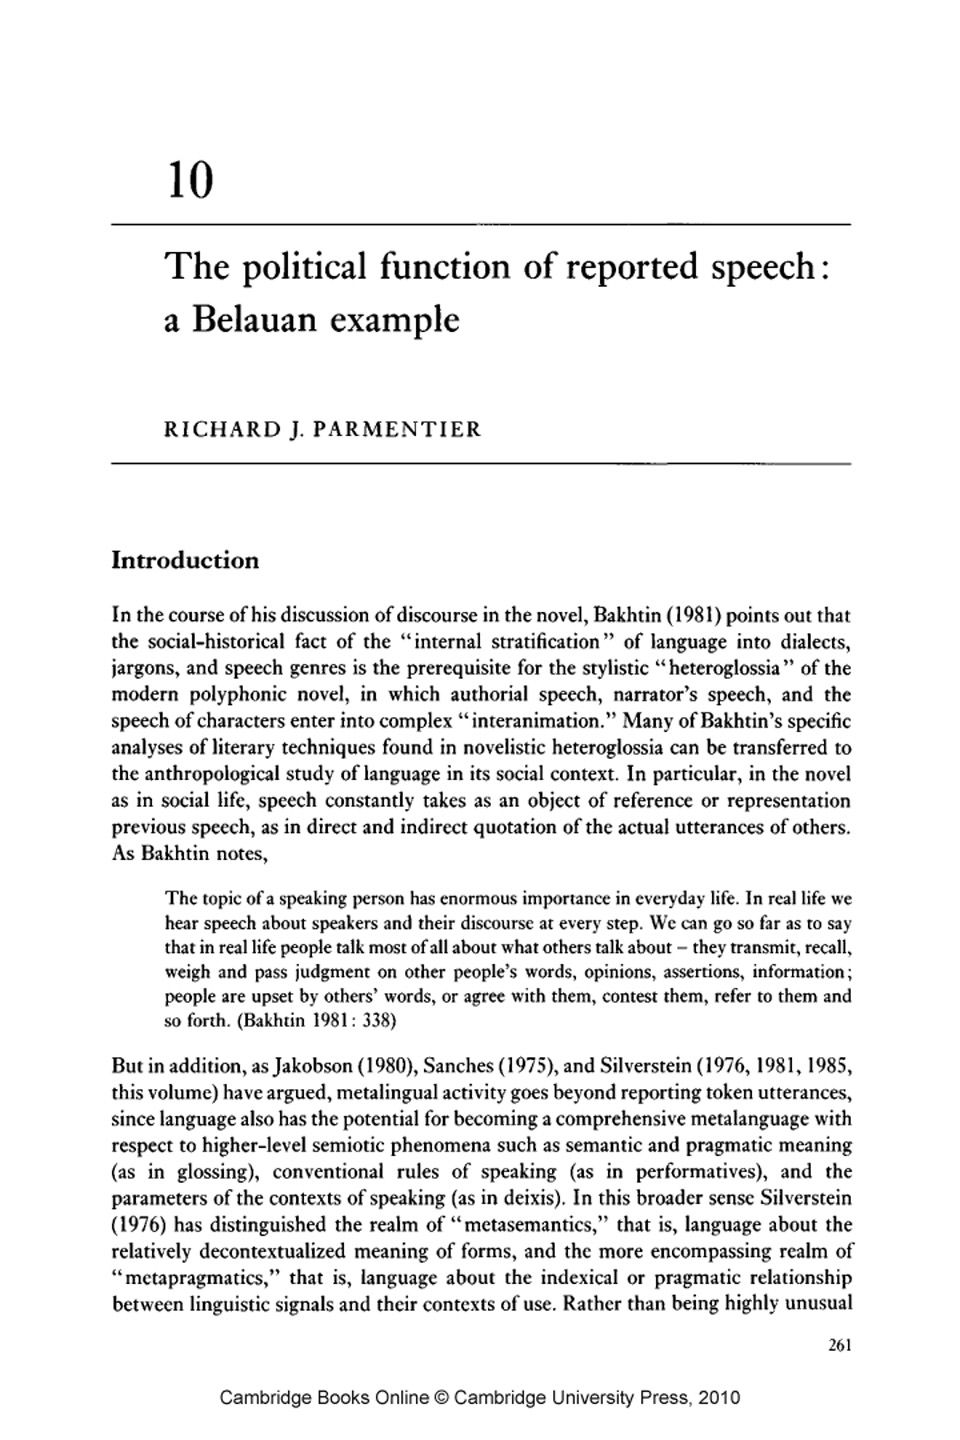 The Political Function Of Reported Speech A Belauan Example